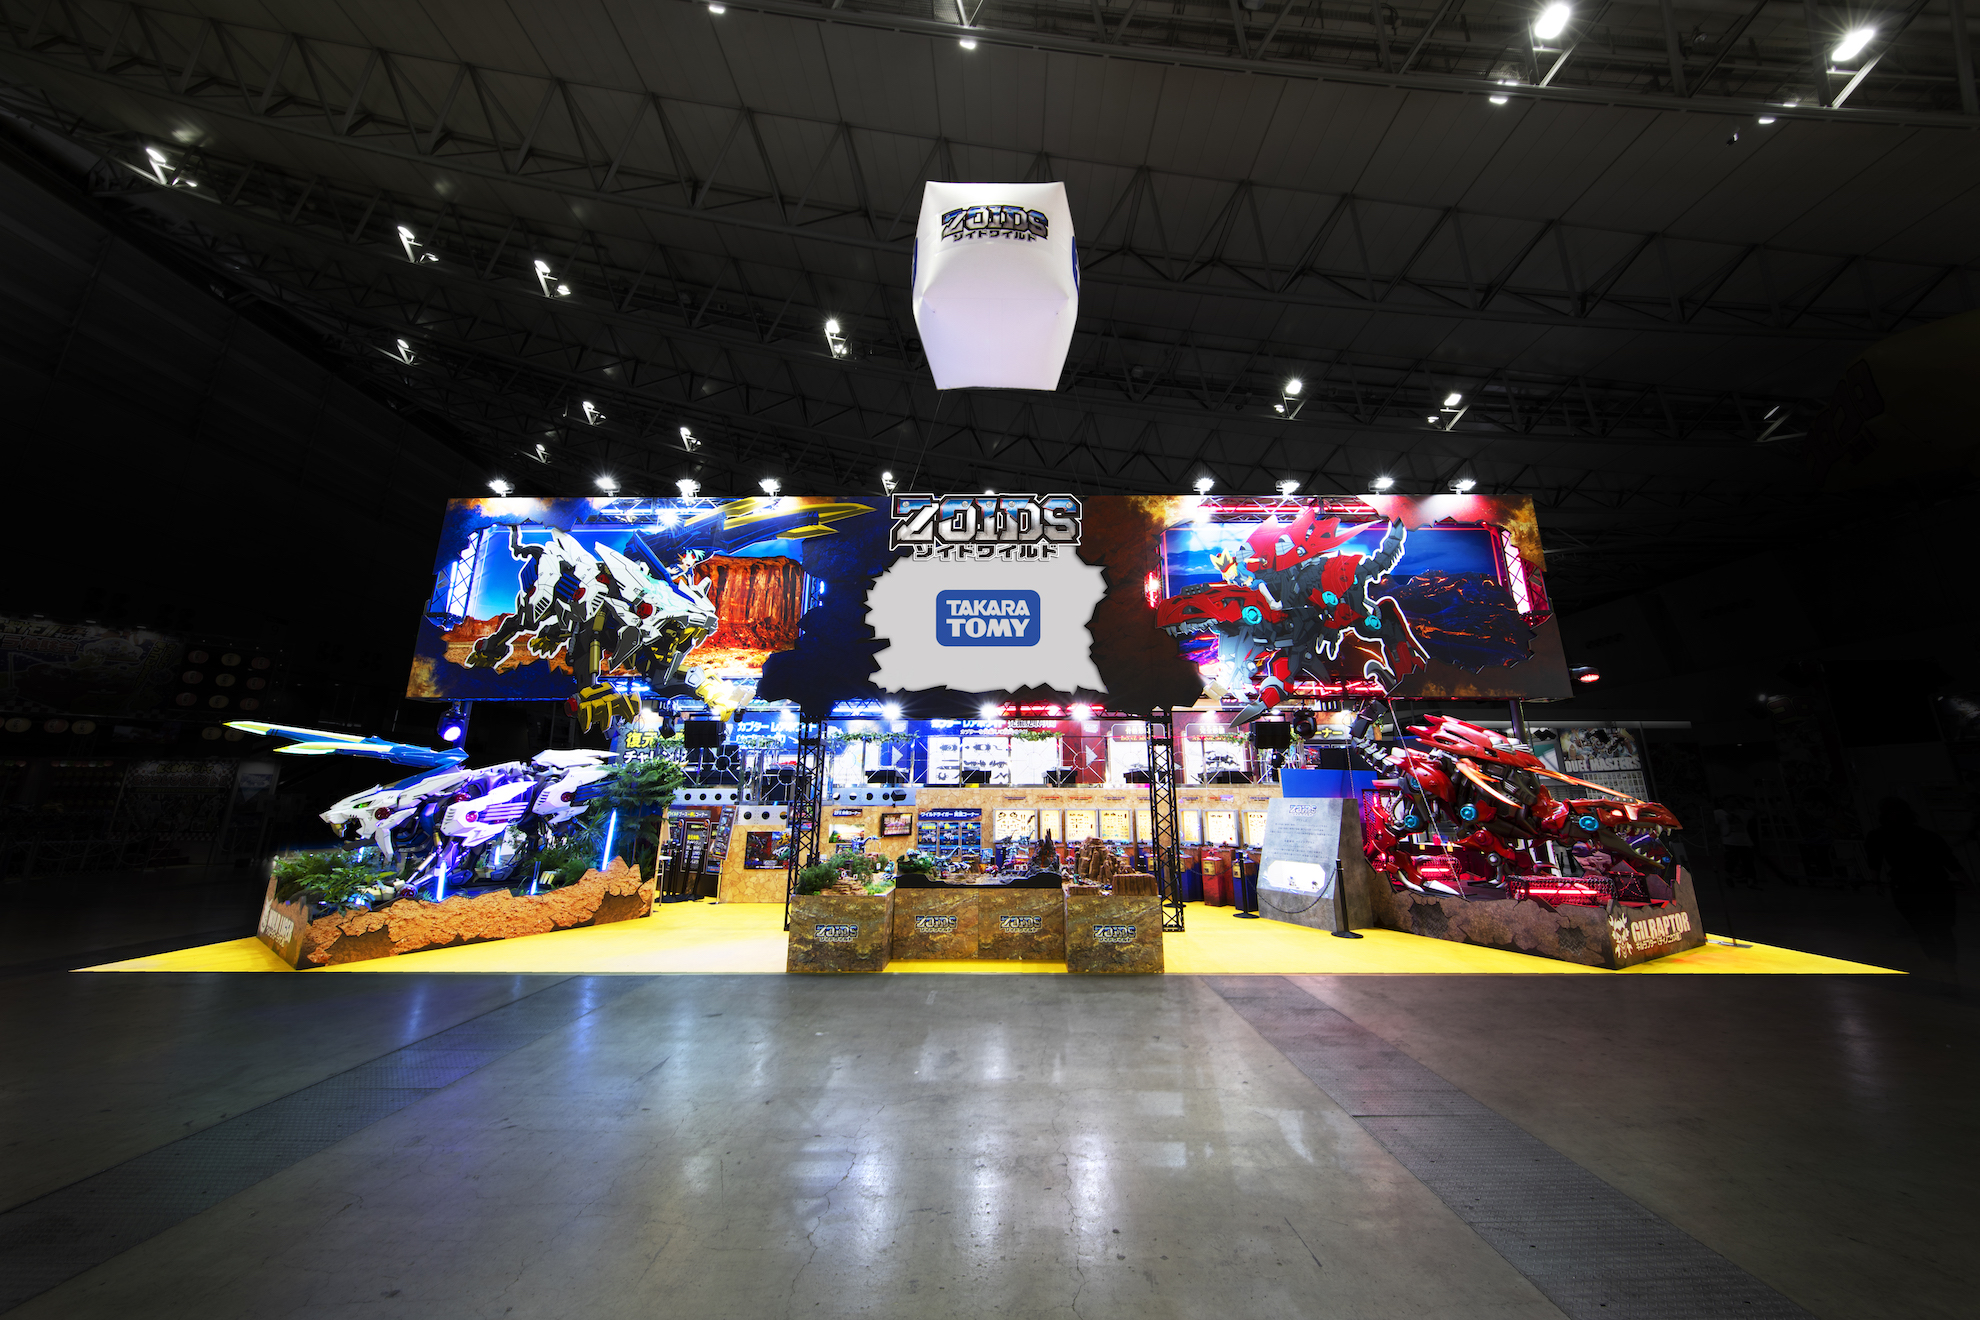 Next Generation World Hobby Fair '18 Summer / TAKARA TOMY ZOIDS Booth